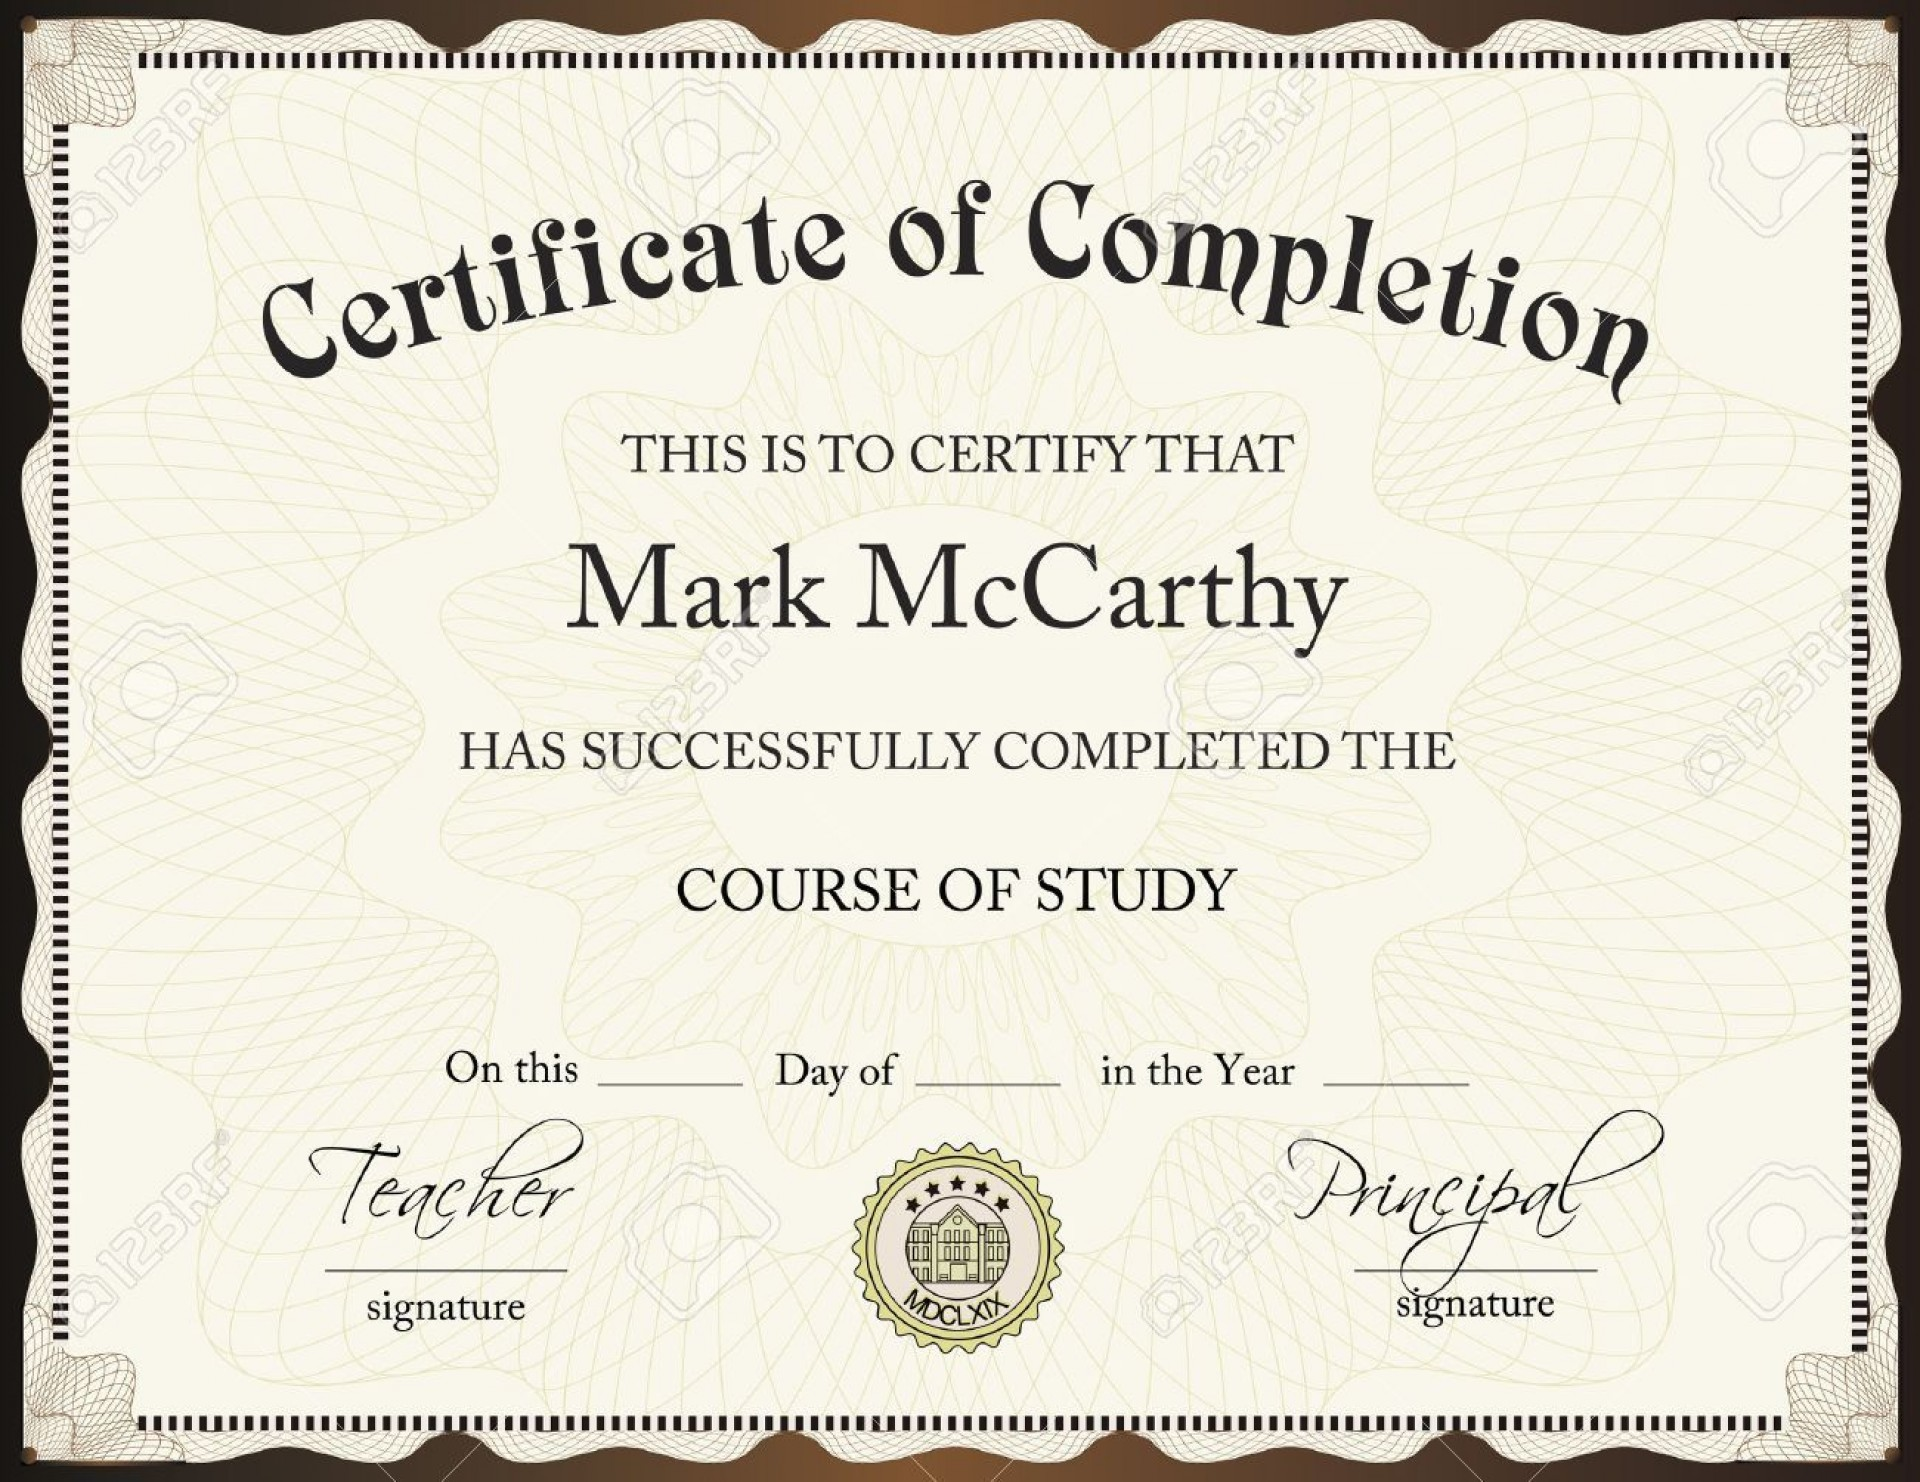 001 Excellent Certificate Of Completion Template Free Sample  Training Download Word1920